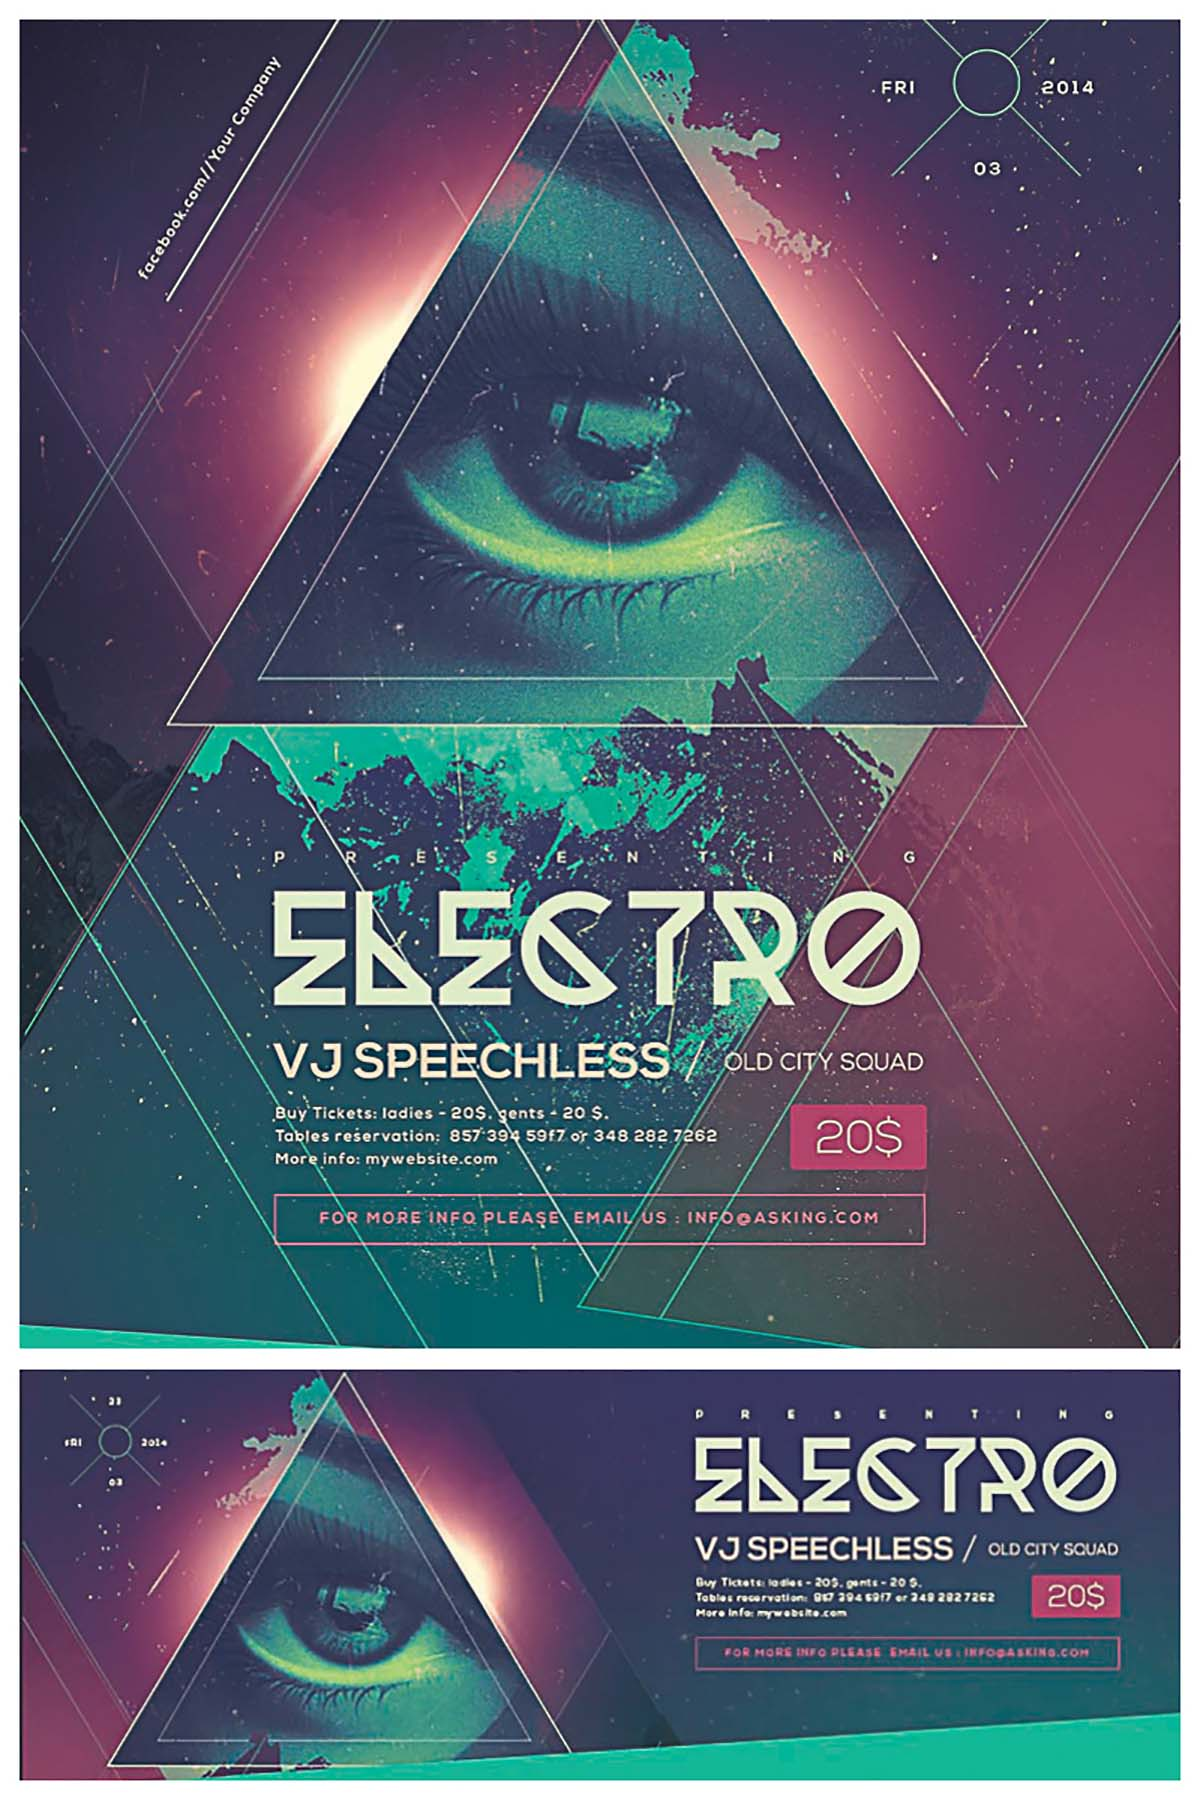 Electro club hipster eye poster and facebook cover set